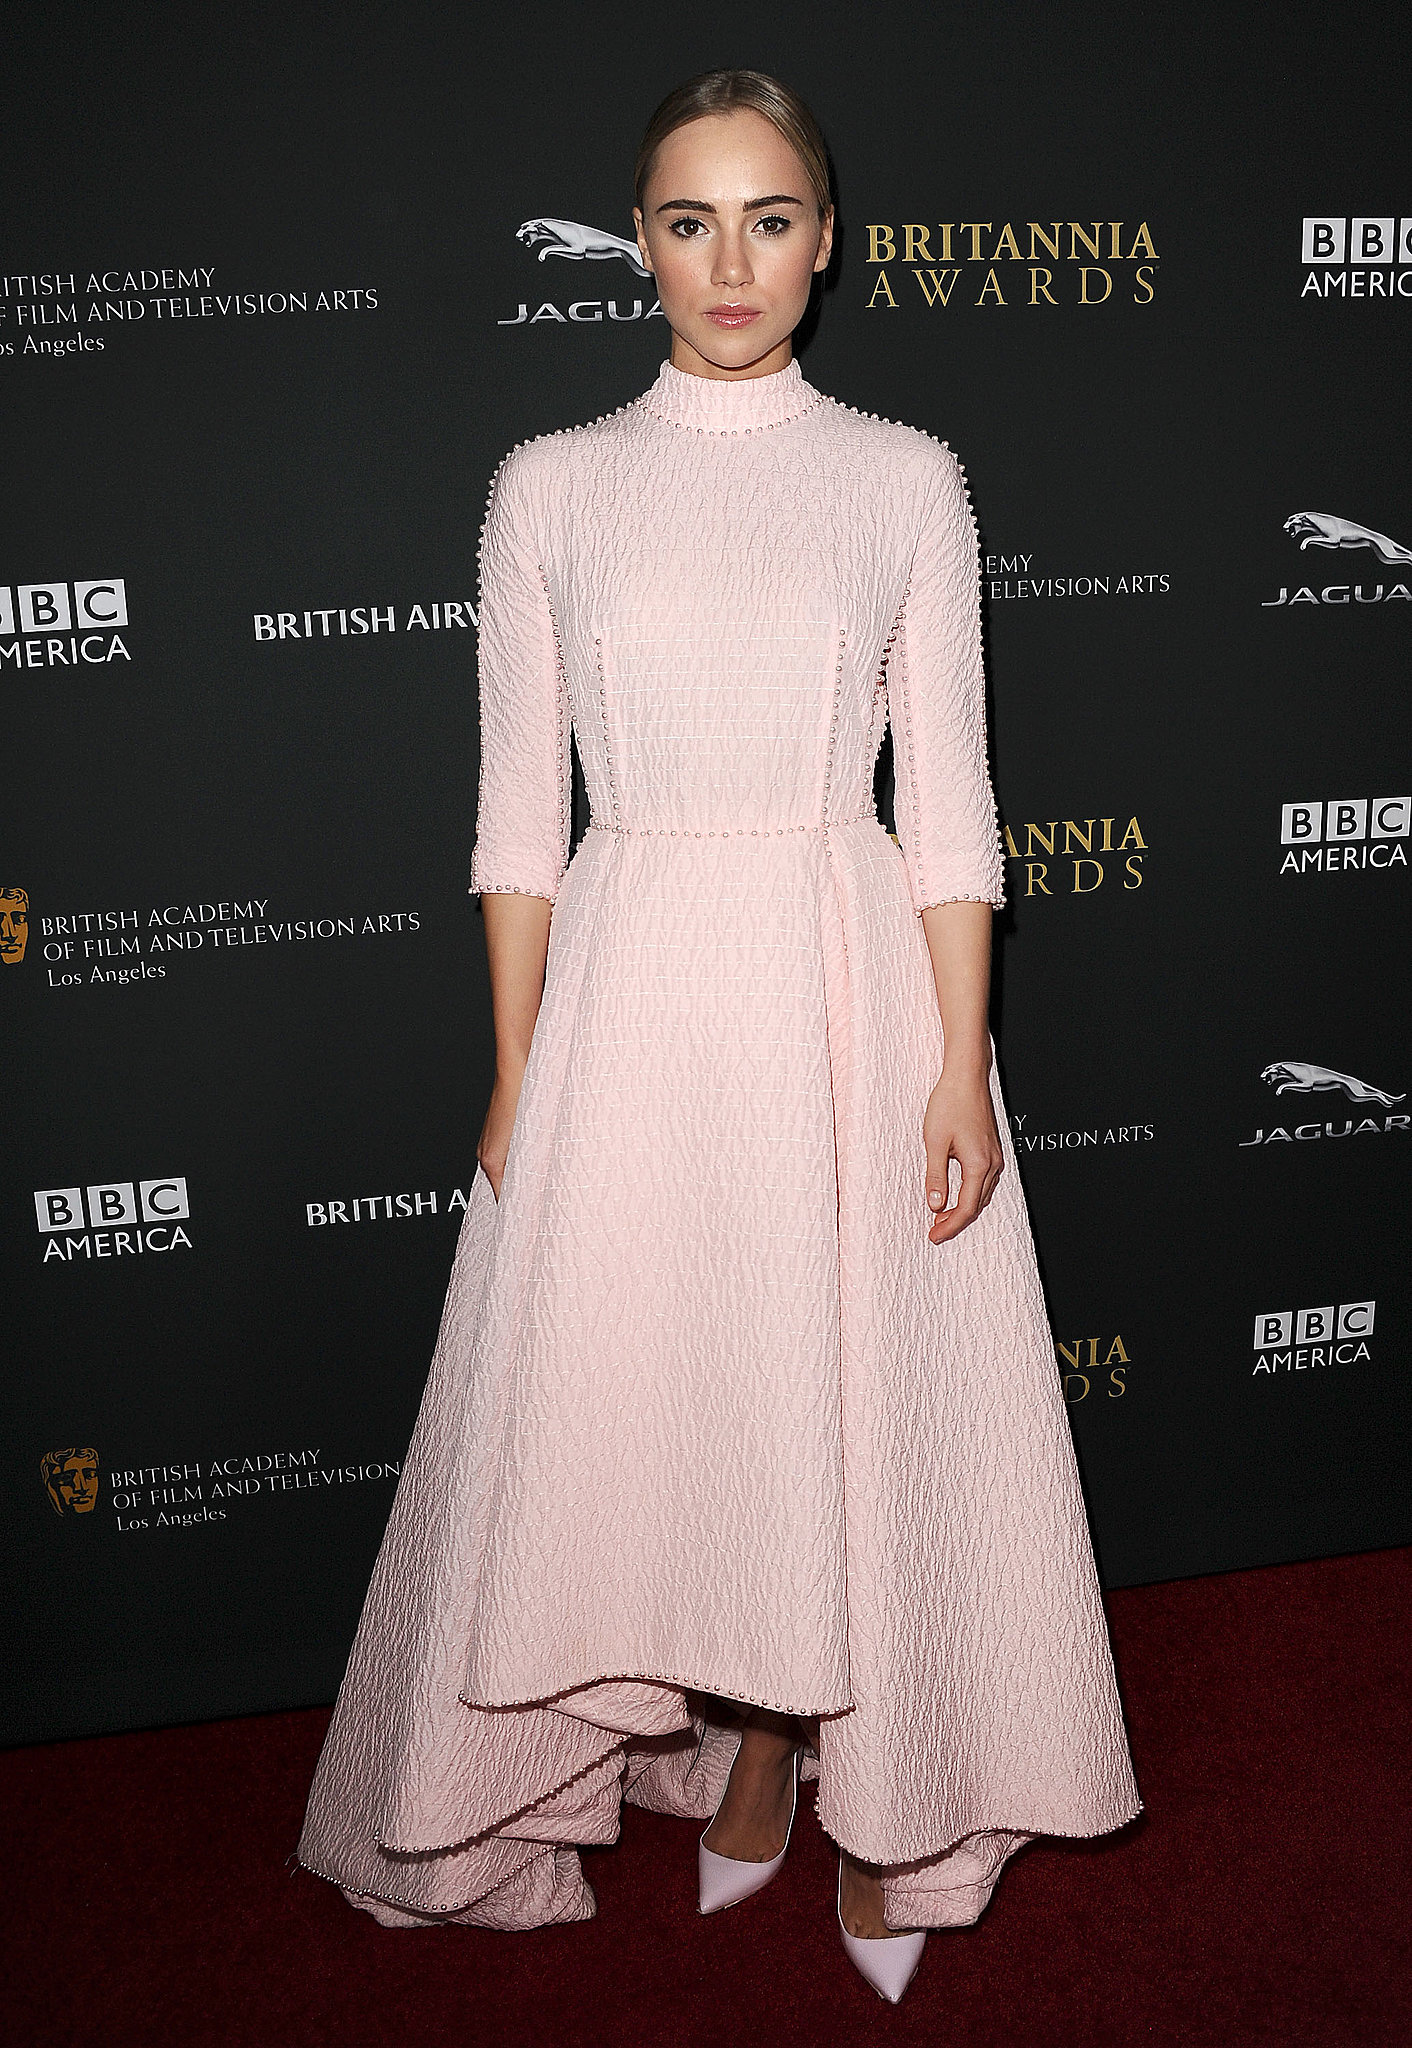 Suki Waterhouse at the BAFTA Britannia Awards.